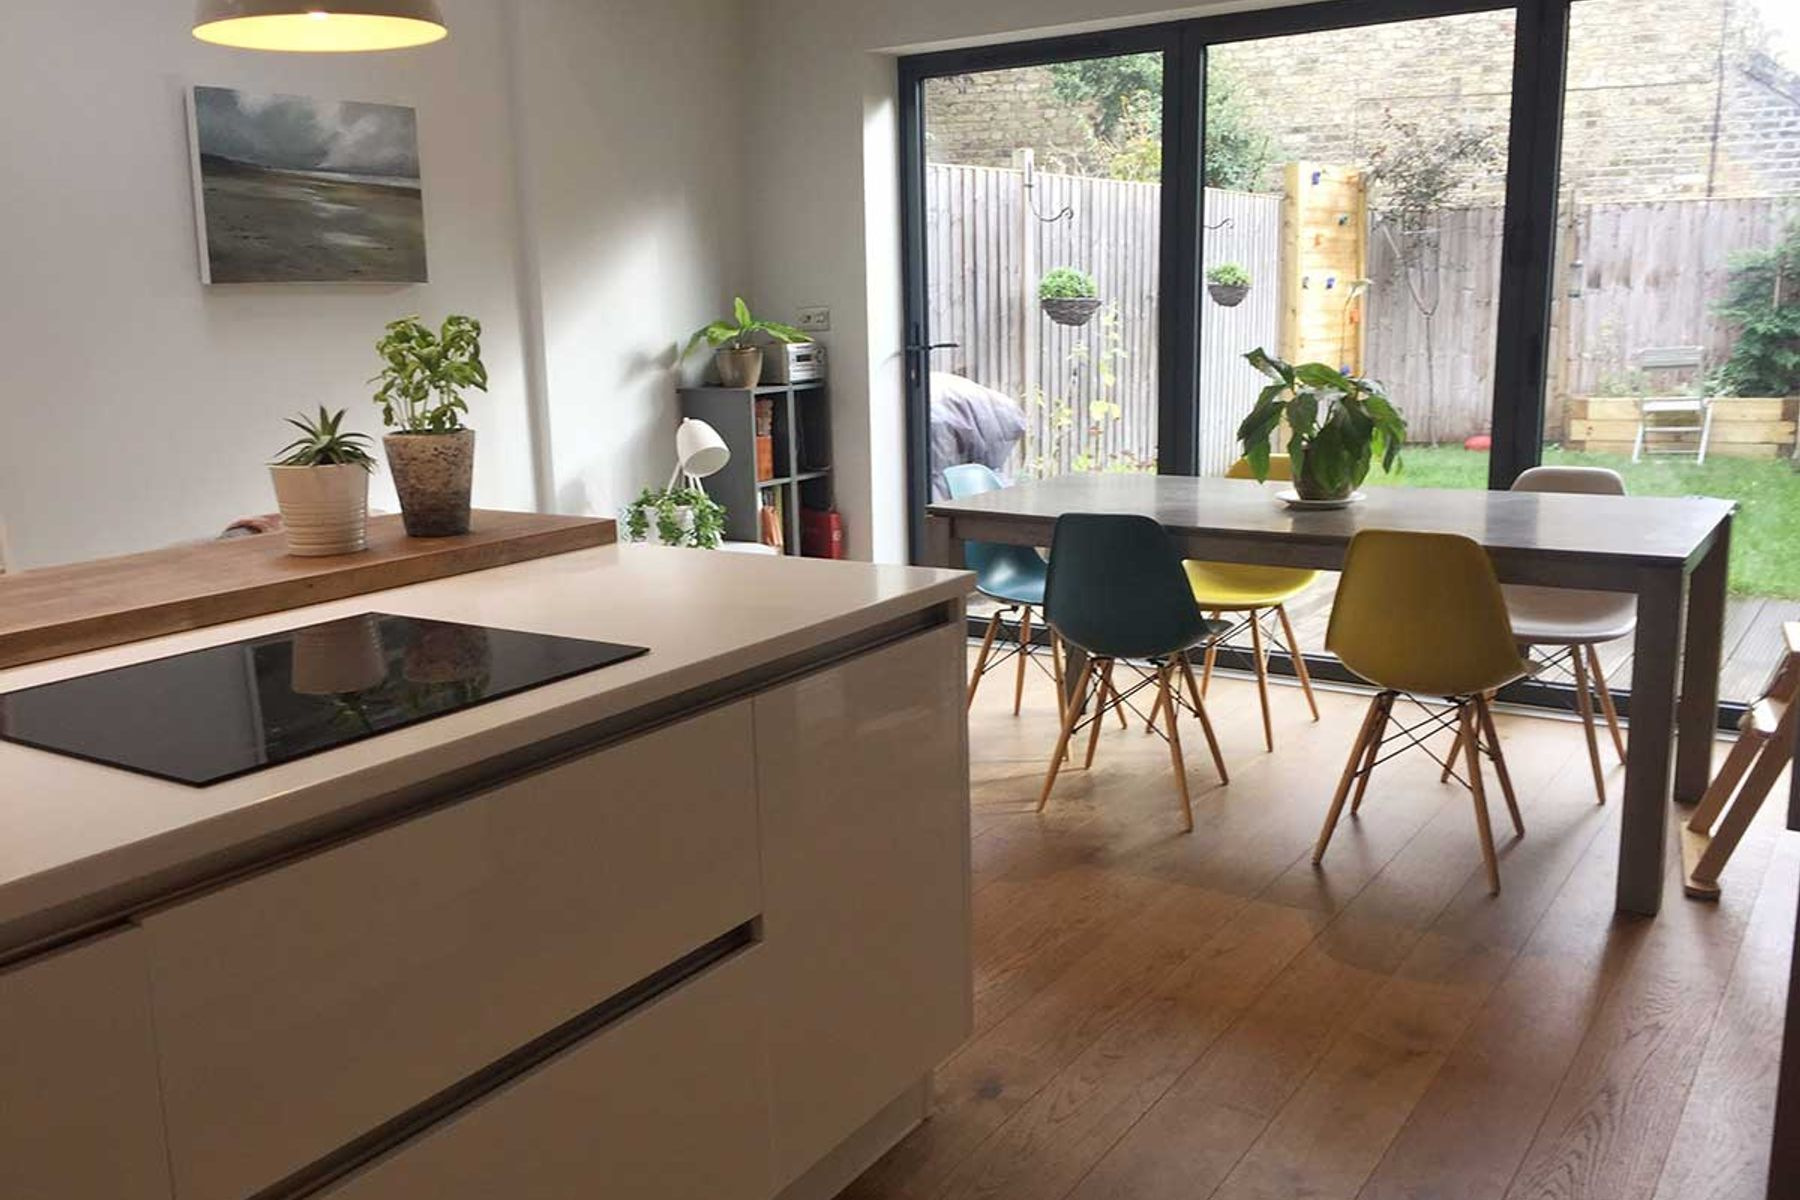 Kitchen dining area with wooden floor